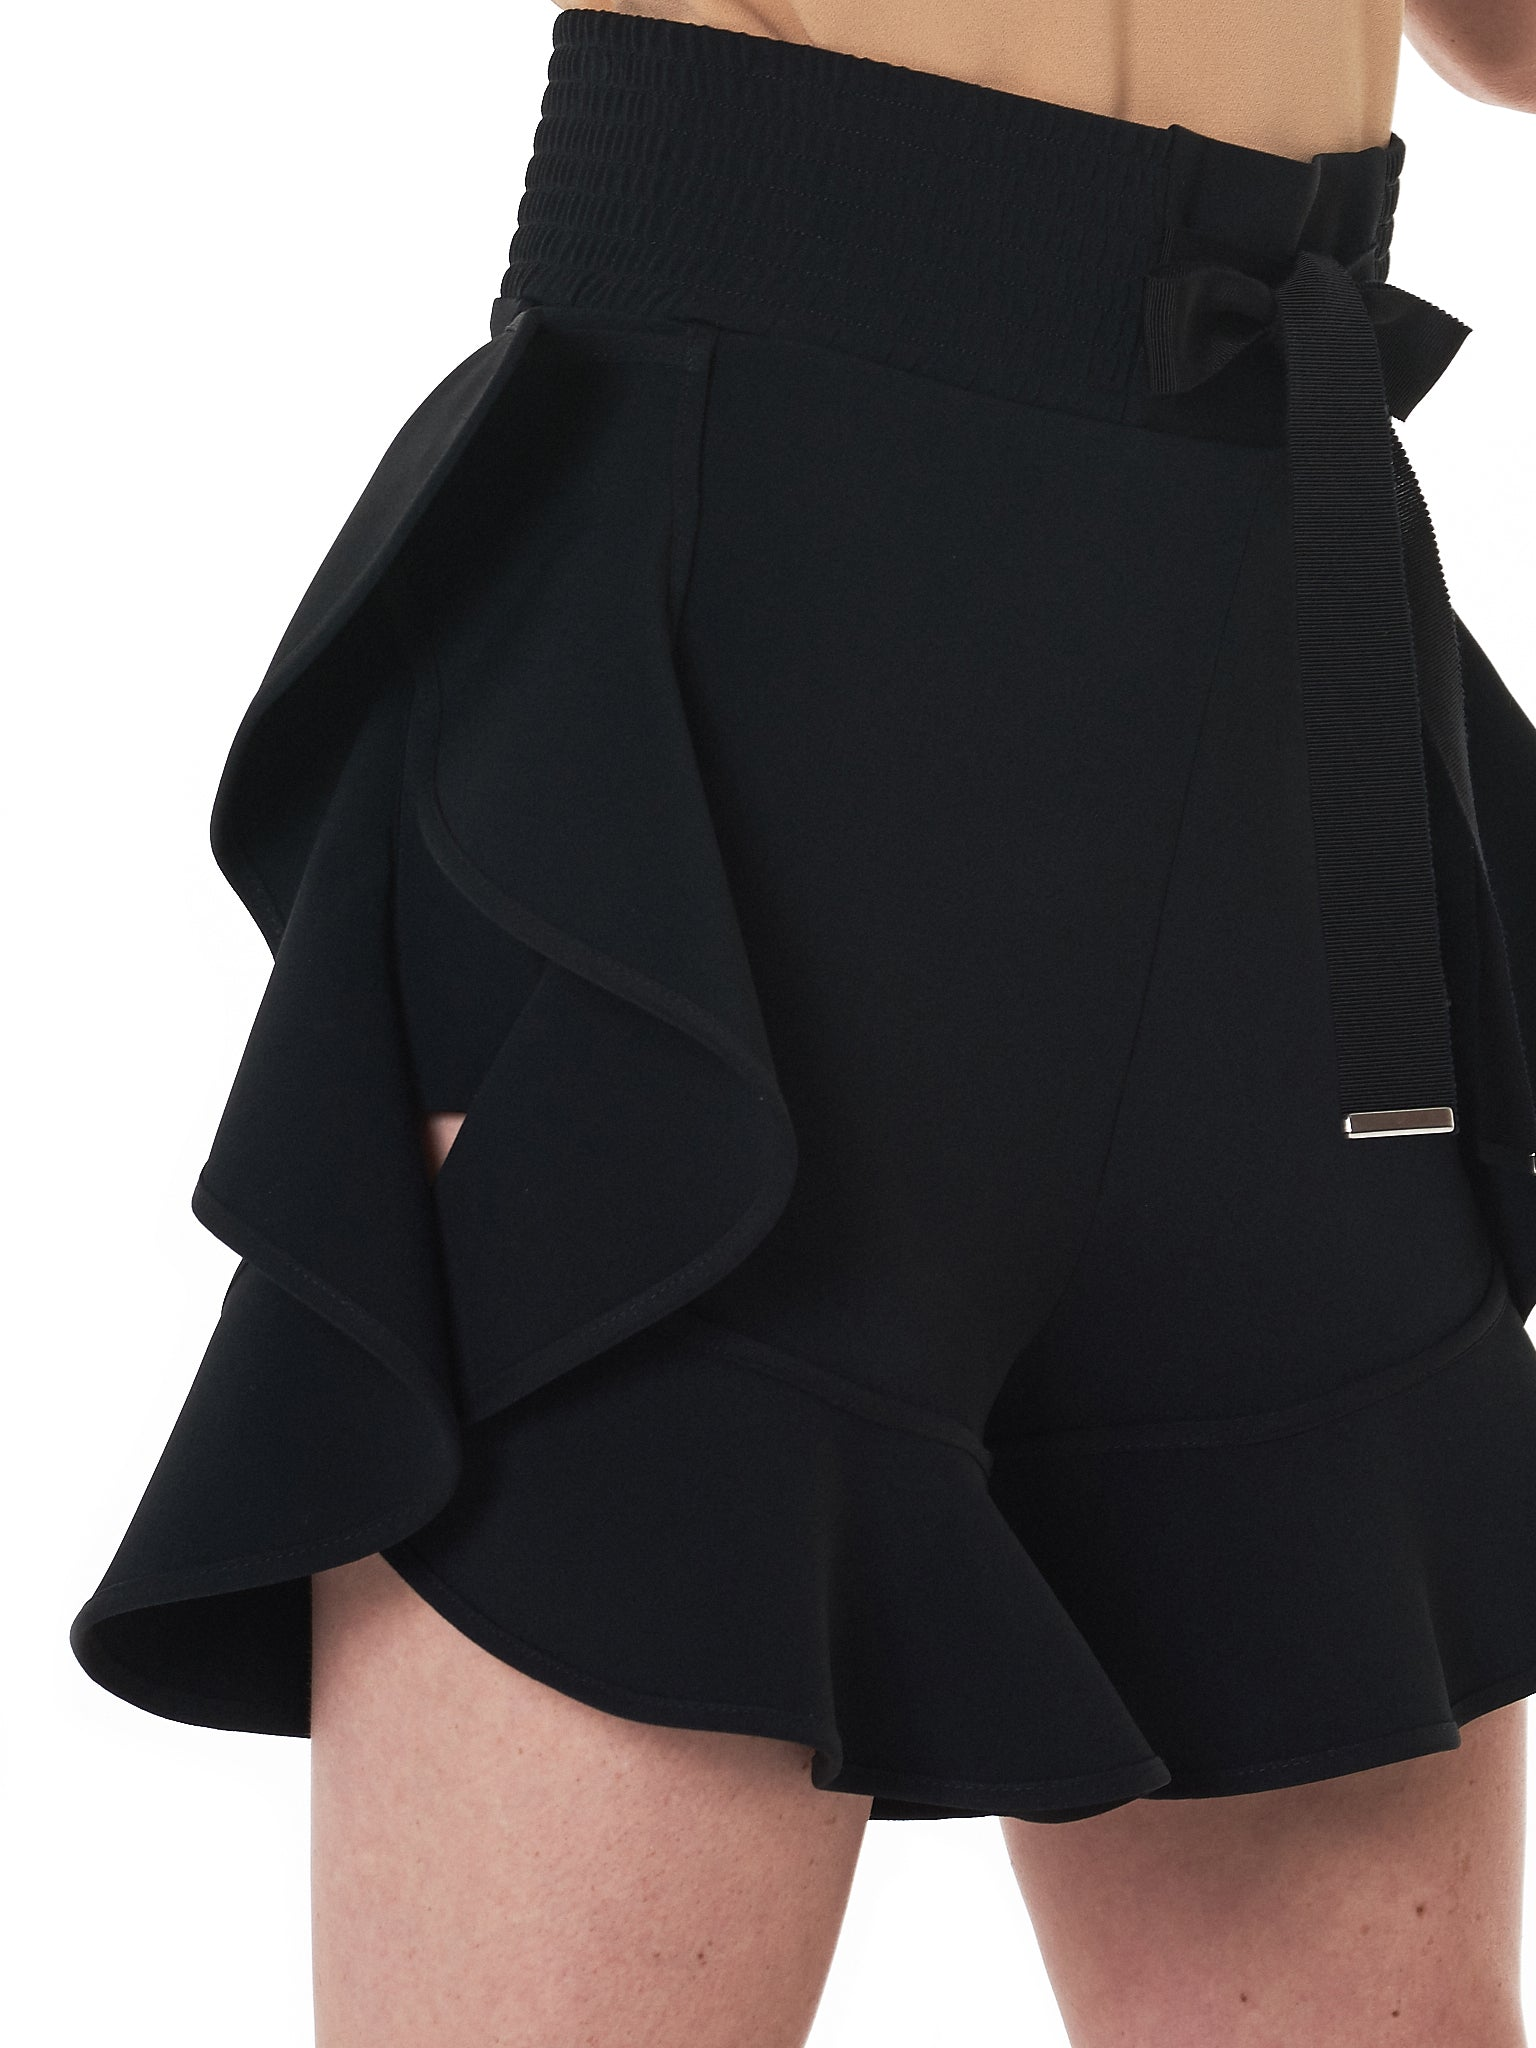 David Koma Shorts - Hlorenzo Detail 1